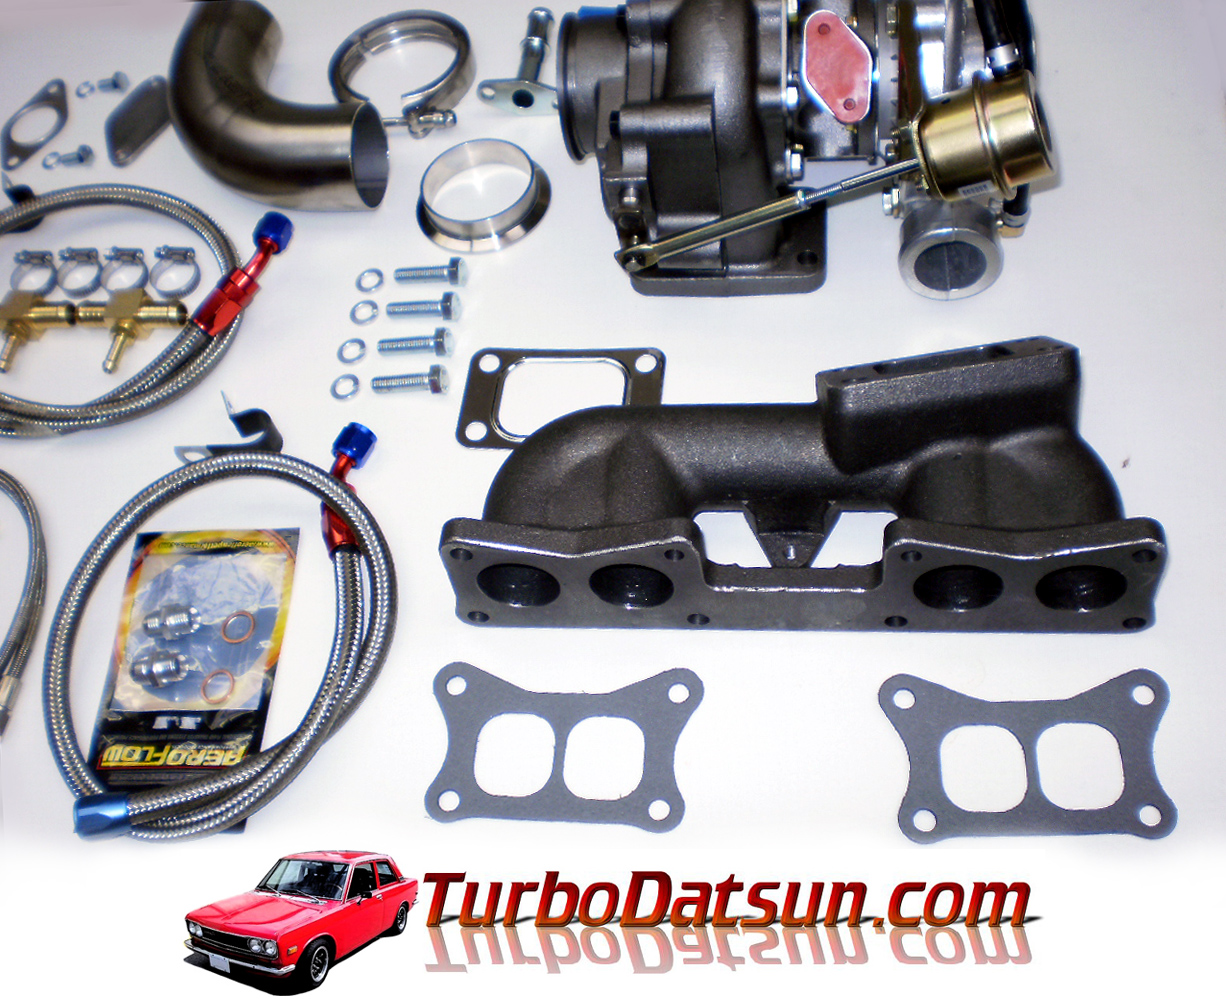 Z24 T3 Turbo Kit 1985 Nissan Hardbody Engine Schematics Parts That Are Needed Like Gaskets Hose Clamps Brackets Nuts And Bolts Etc There Is No Fabrication Necessary Apart From Welding The Exhaust Dump